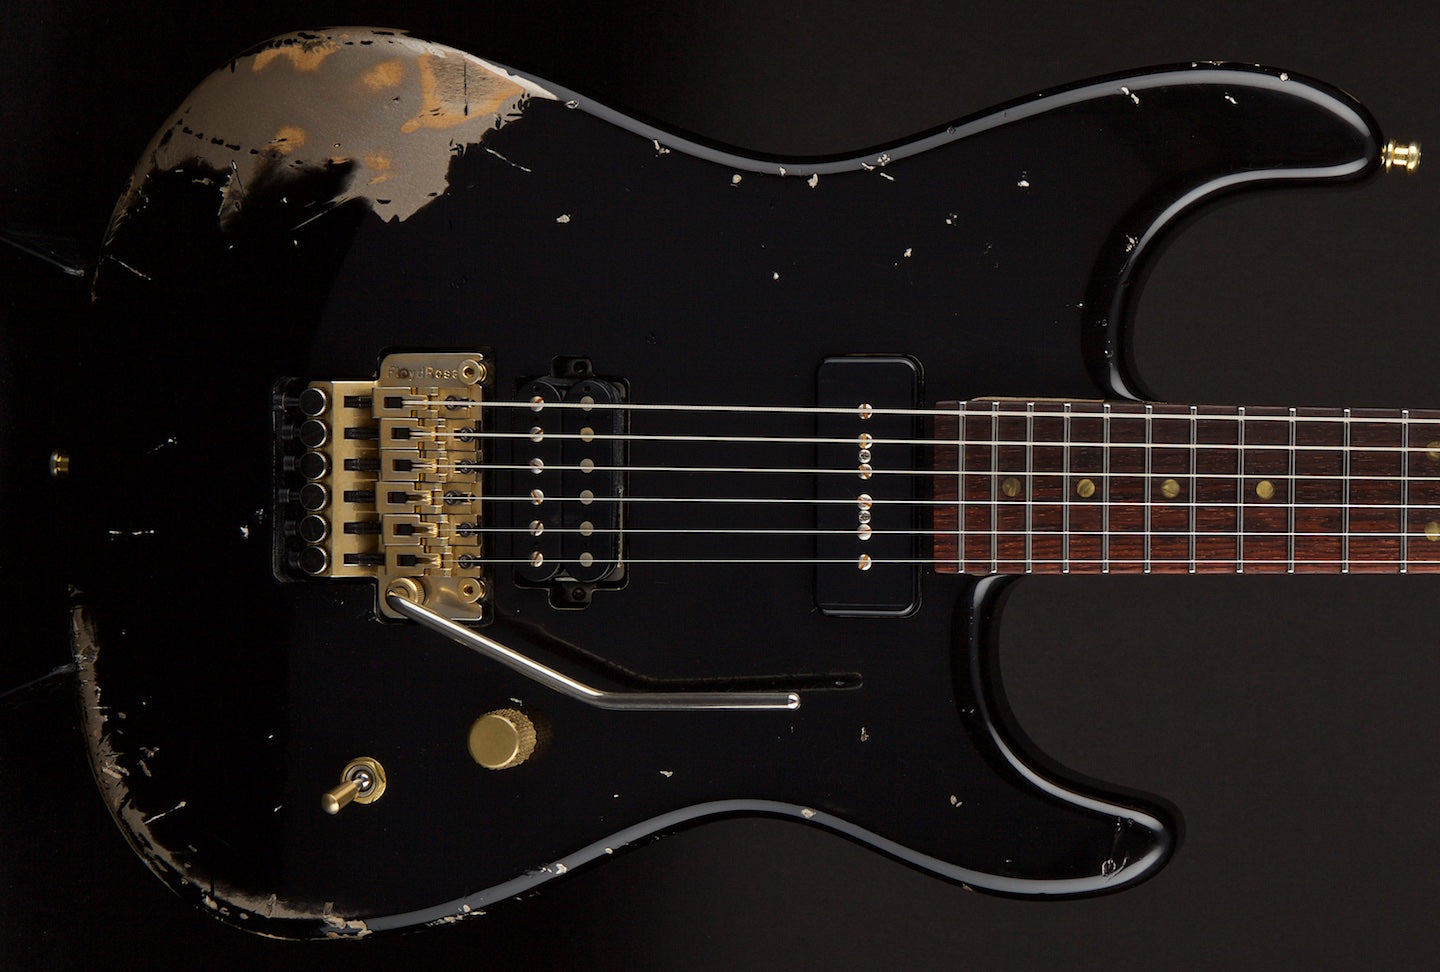 Luxxtone Guitars El Machete Black Over Shoreline Gold #0069